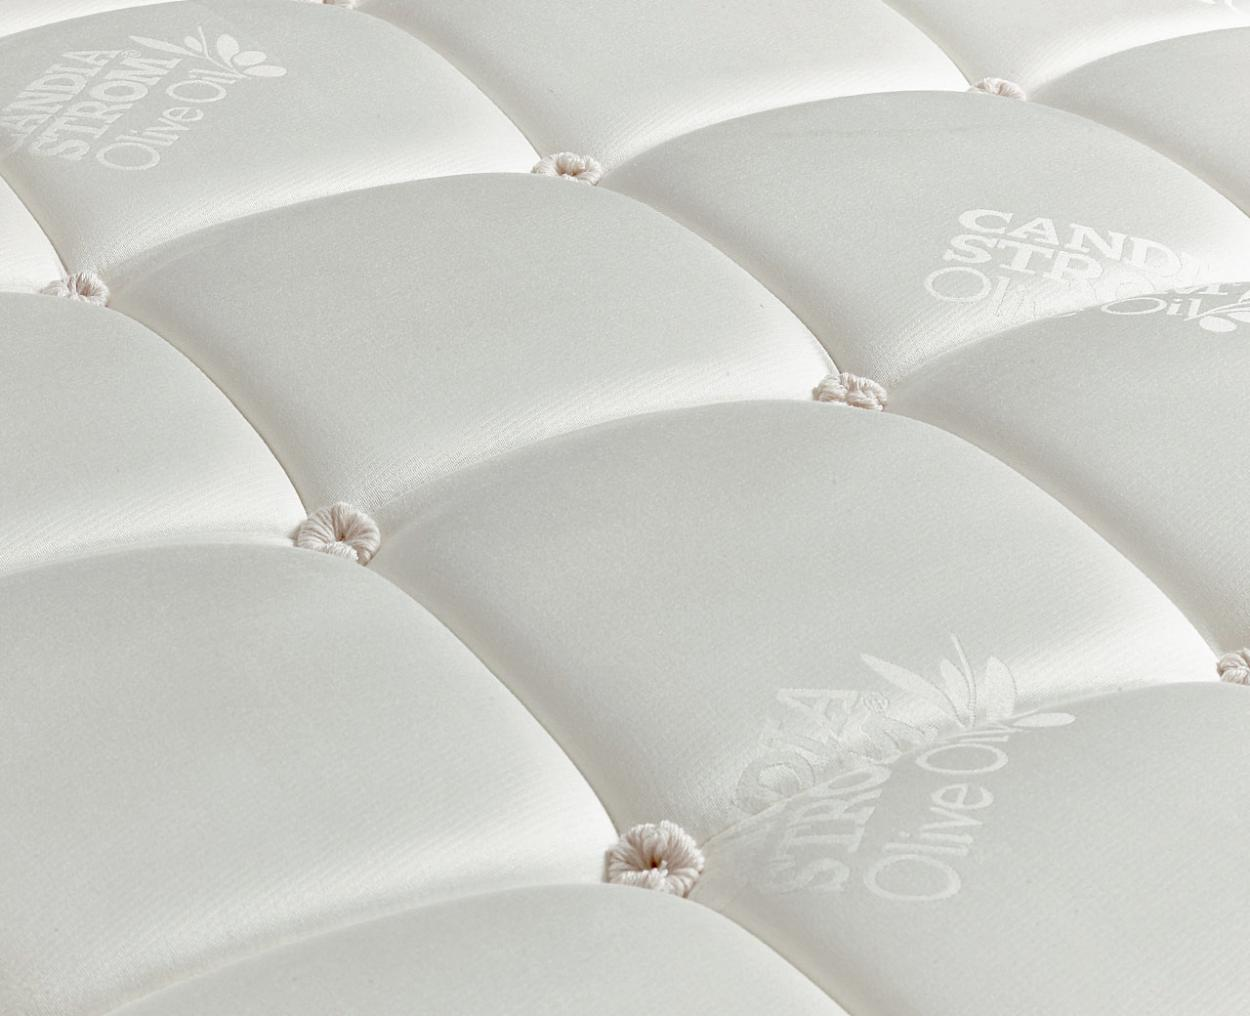 CandiaStrom - Mattress SELENE - HYPERION COLLECTION -  Details